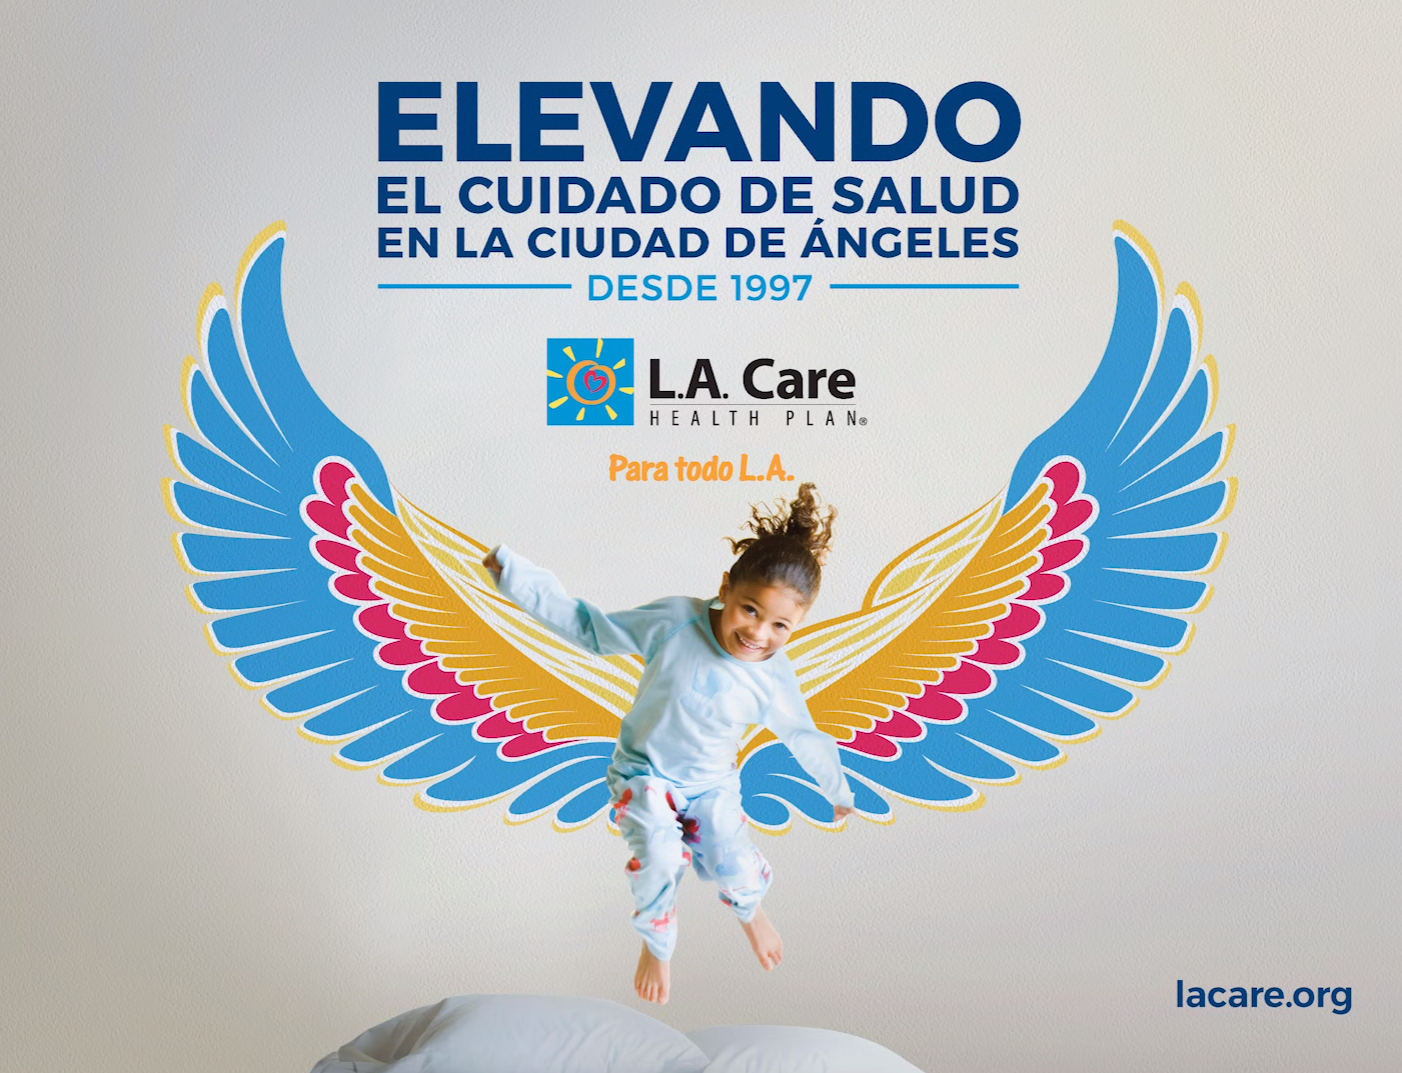 L.A. Care Launches New Marketing Campaign to Reinvigorate its Brand